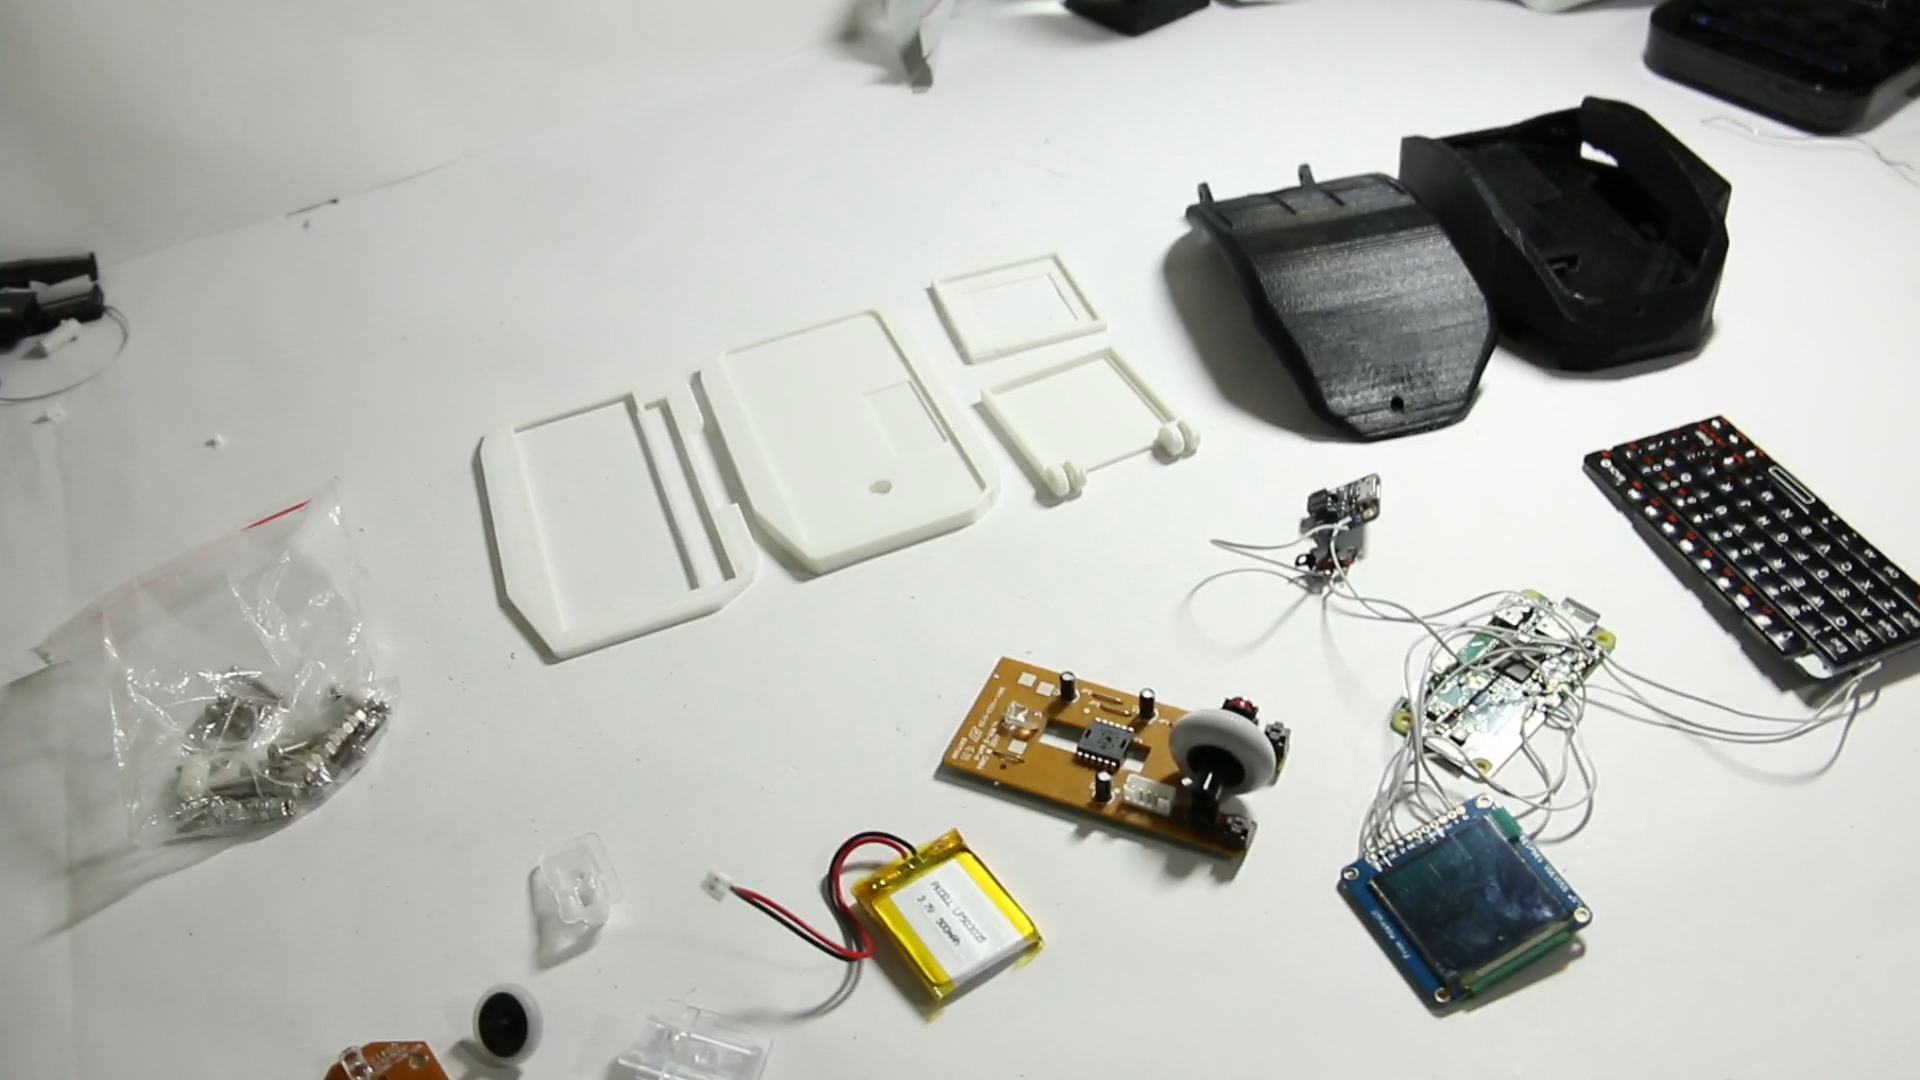 The Computer Mouse parts